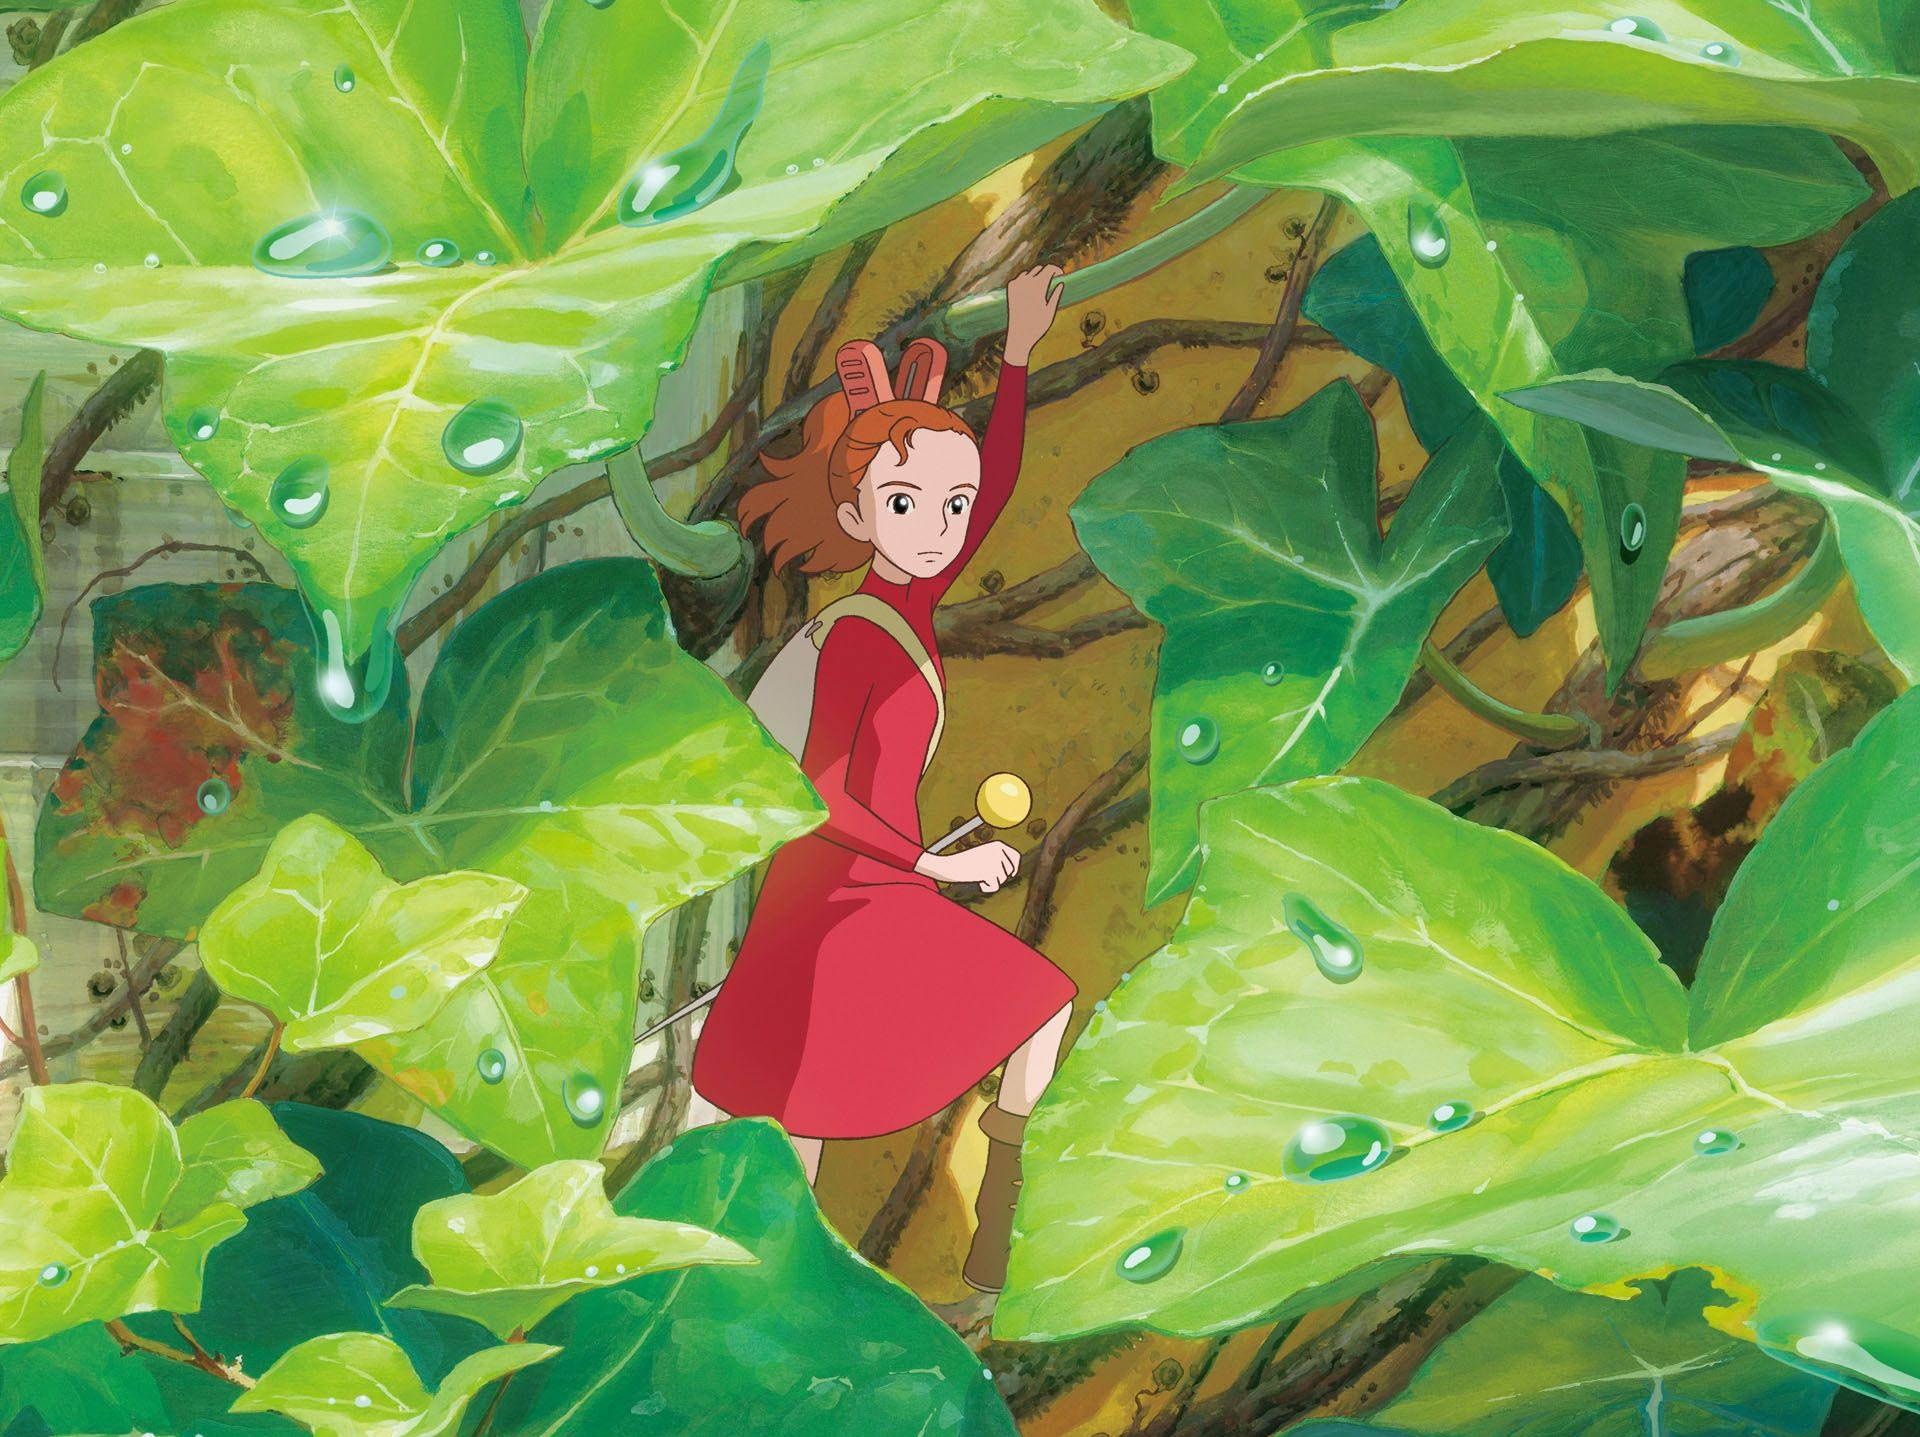 HomeVideodrome: Whimsical 'Arrietty' Fuses Disney, Japanese Animation Flourishes